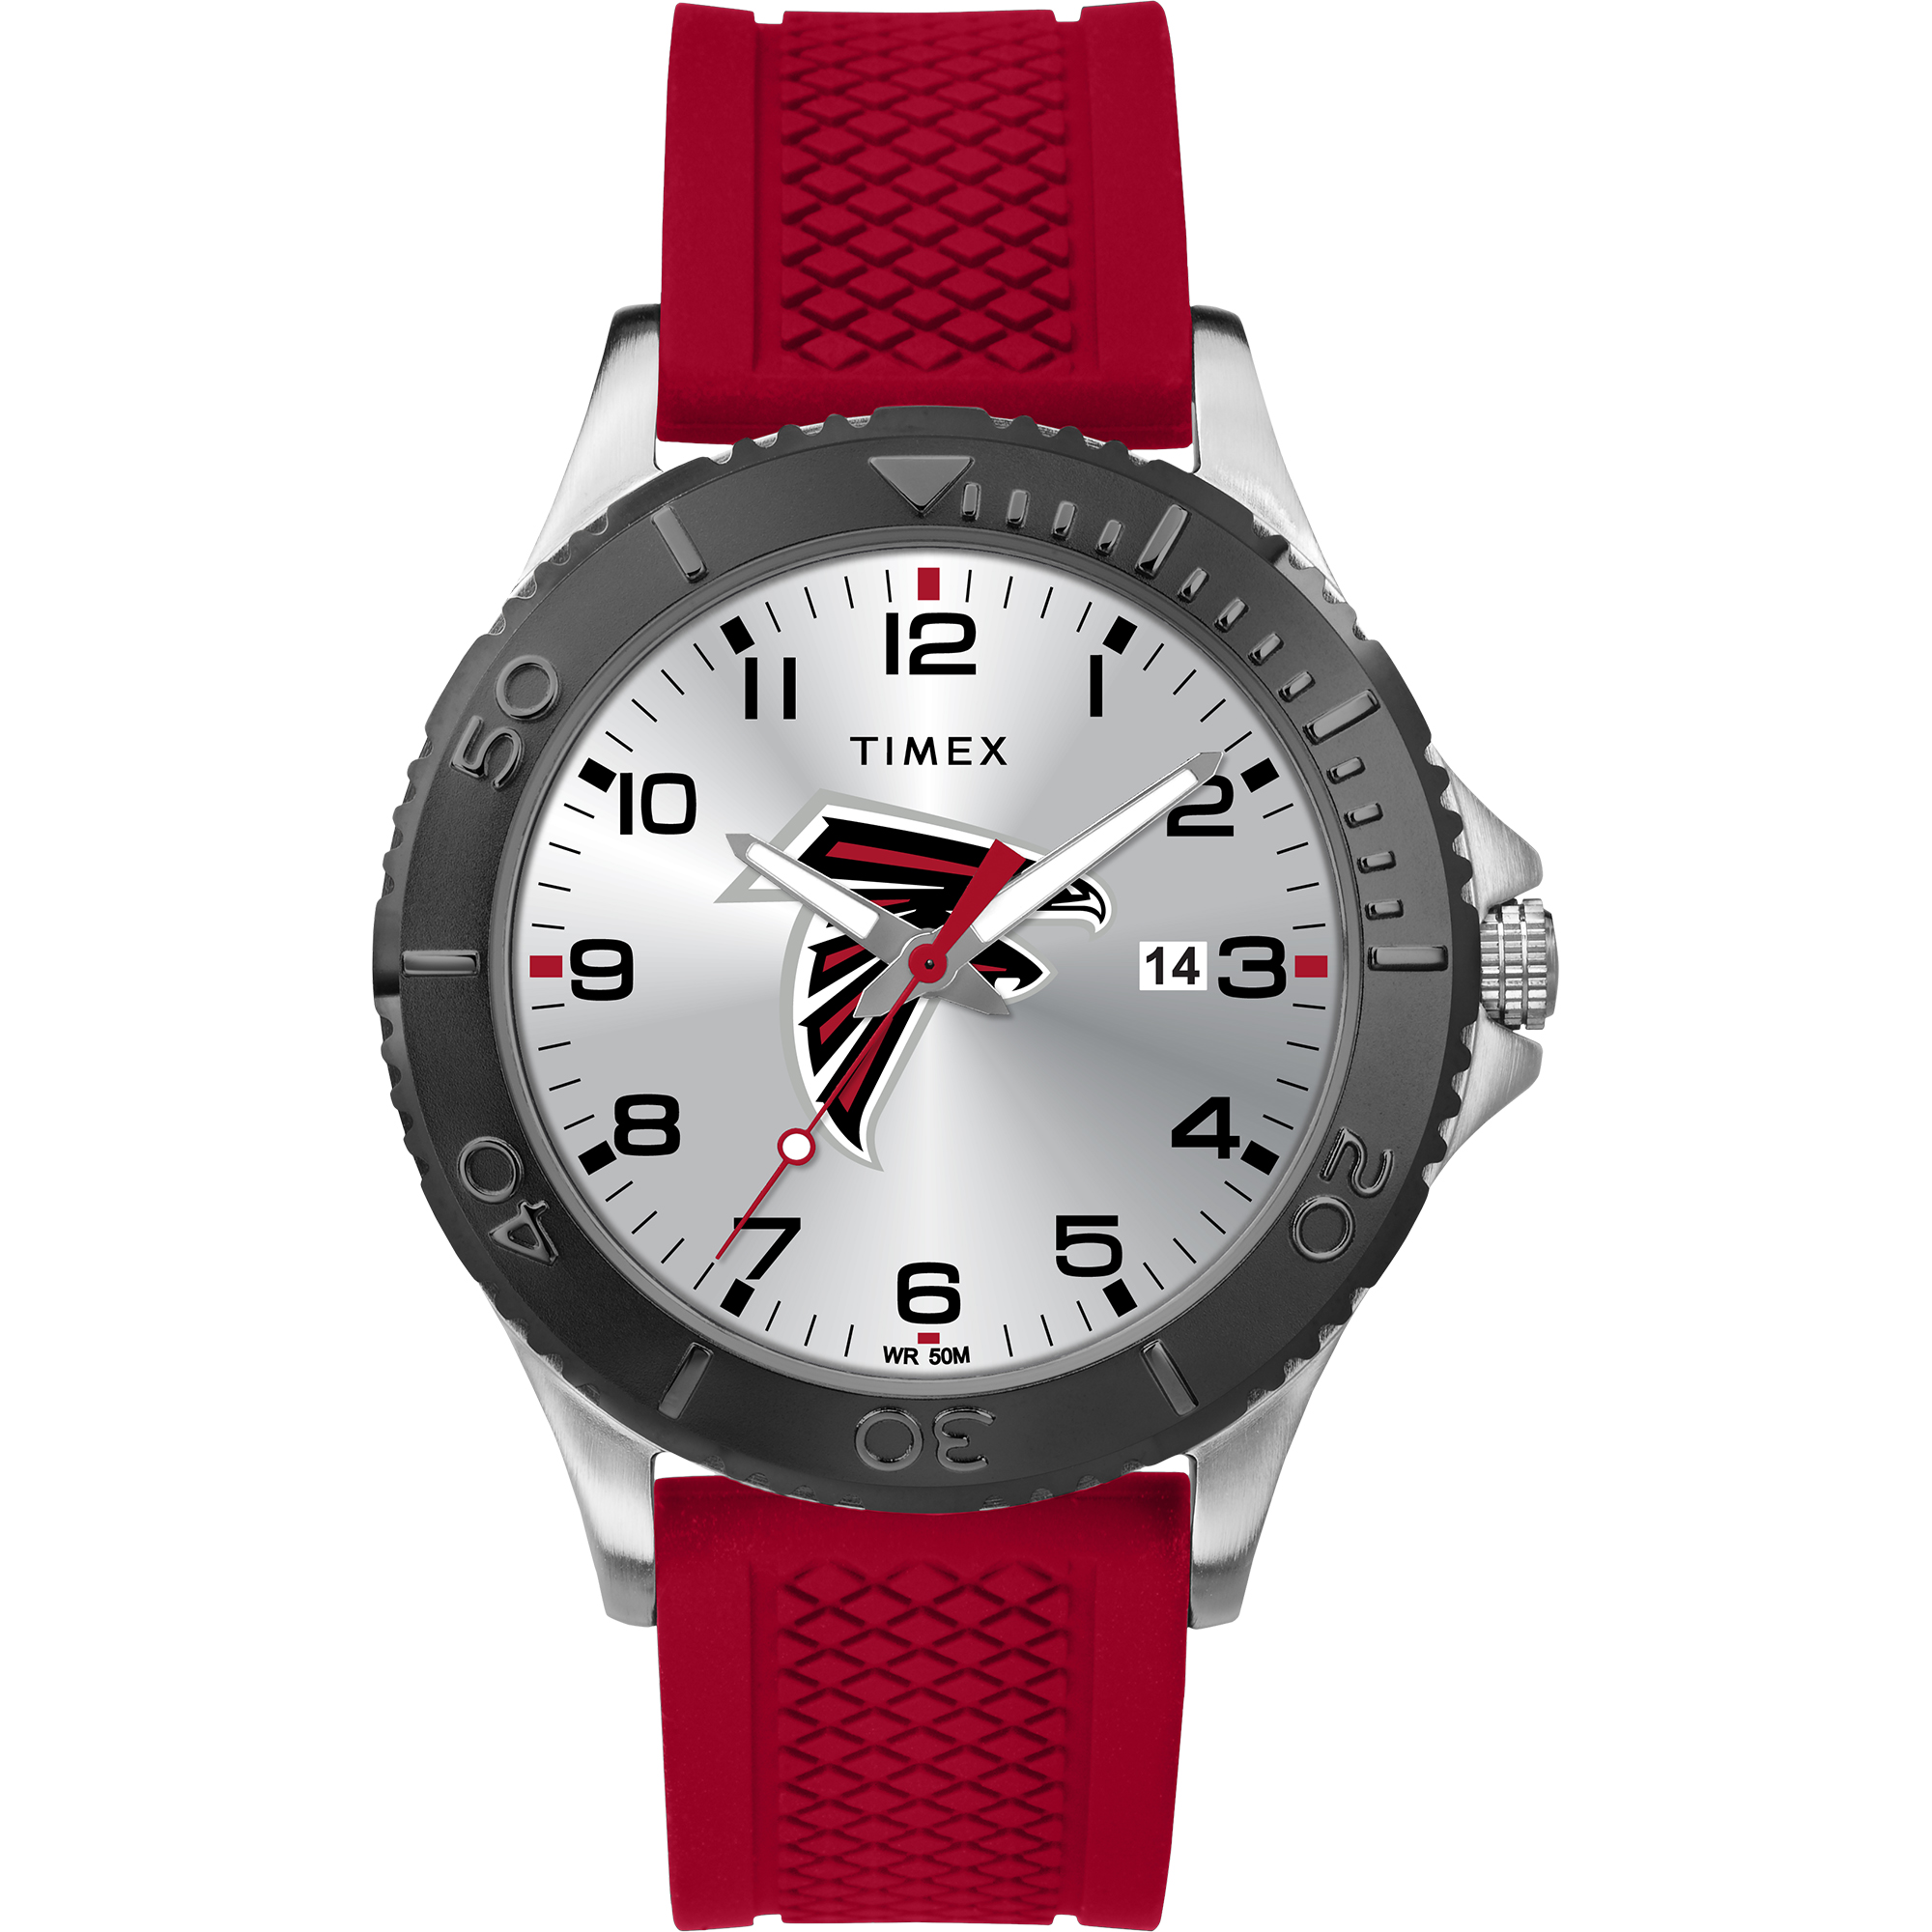 Timex - NFL Tribute Collection Gamer Red Men's Watch, Atlanta Falcons